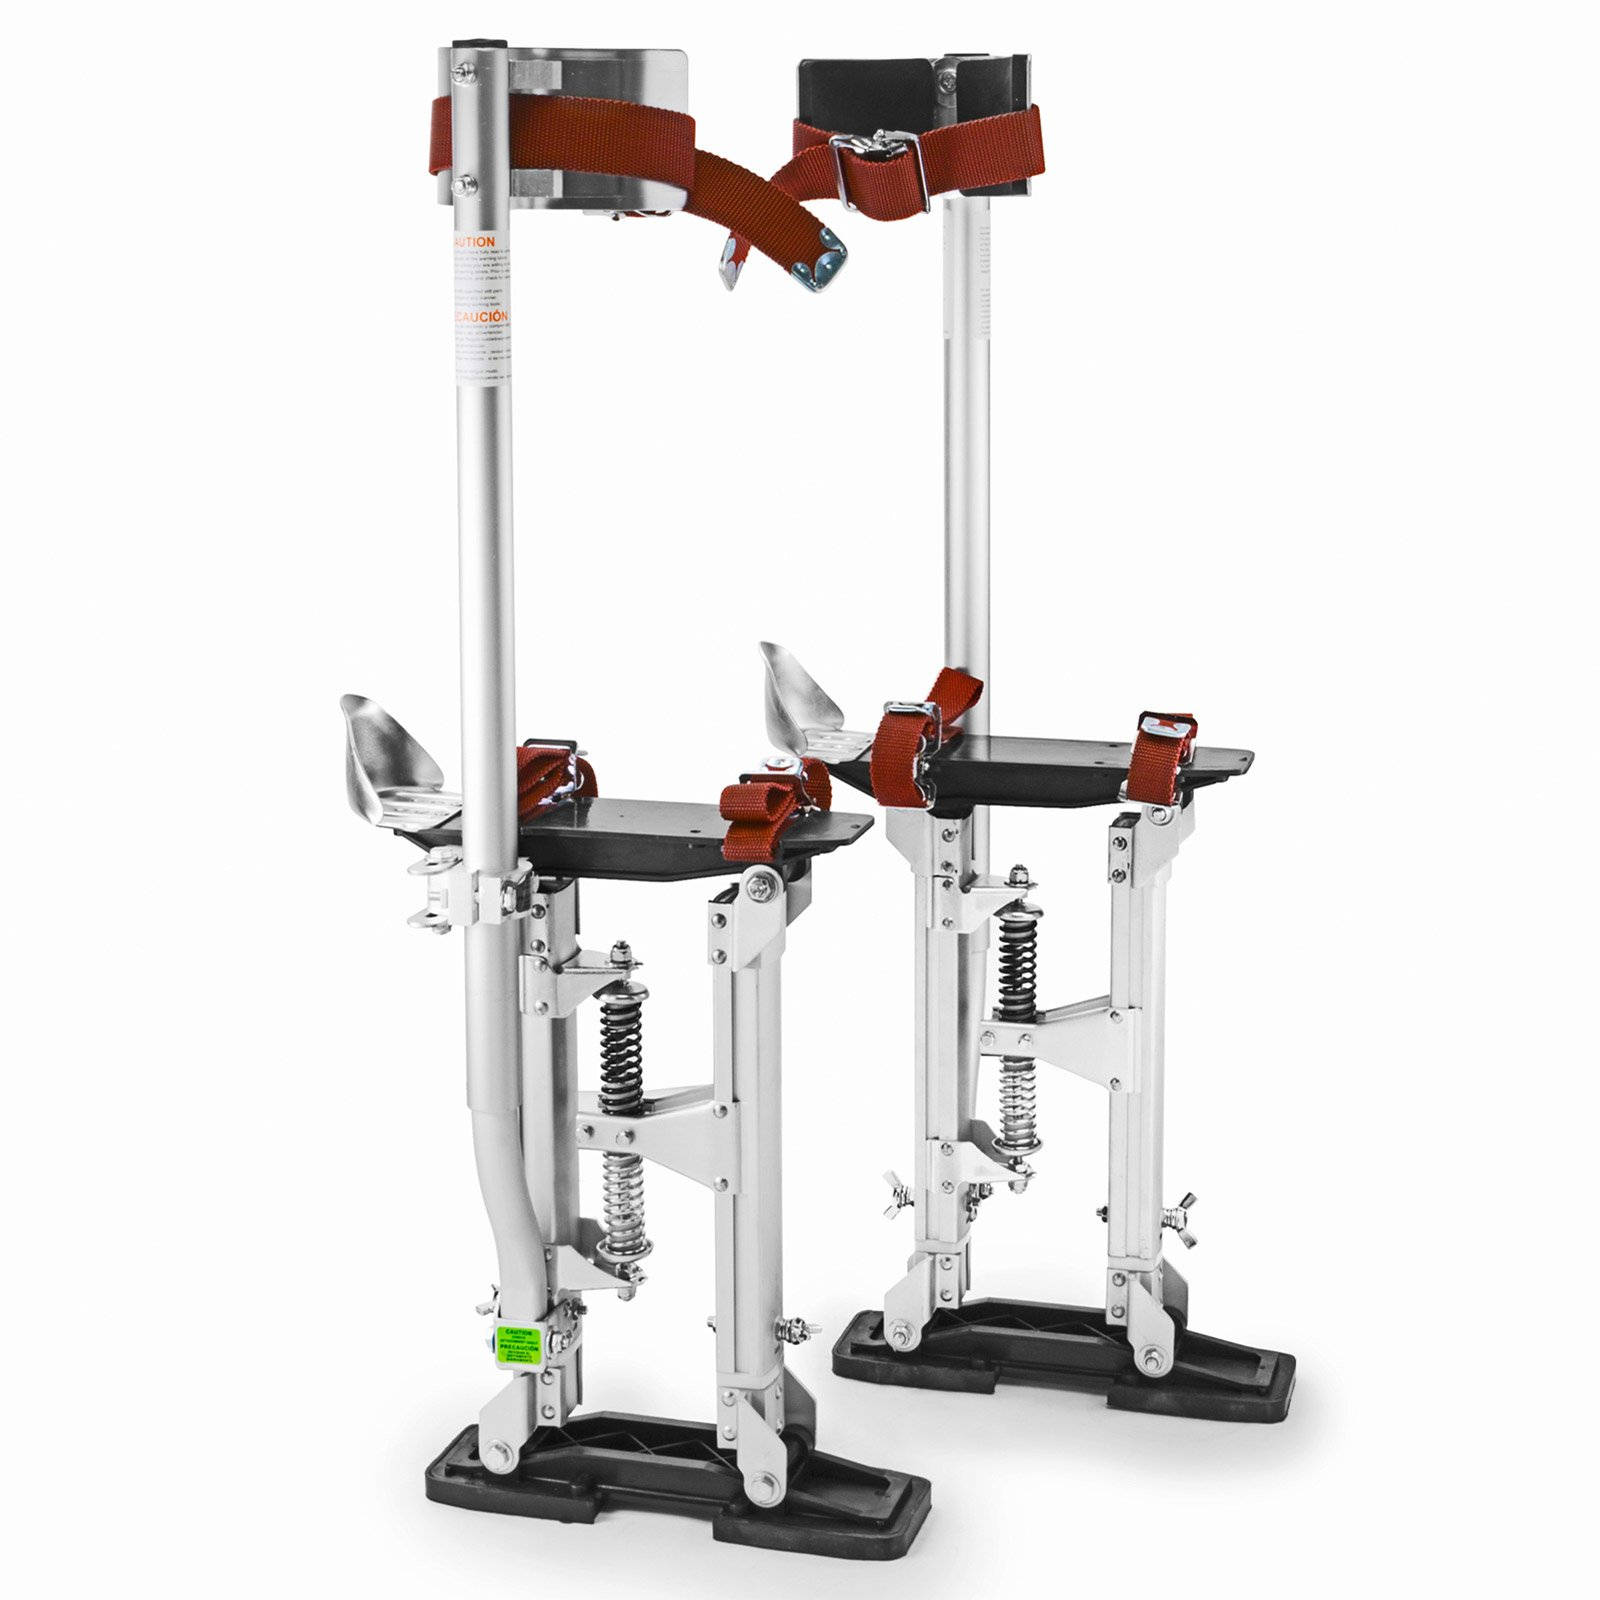 GypTool Pro 15 Drywall Stilts